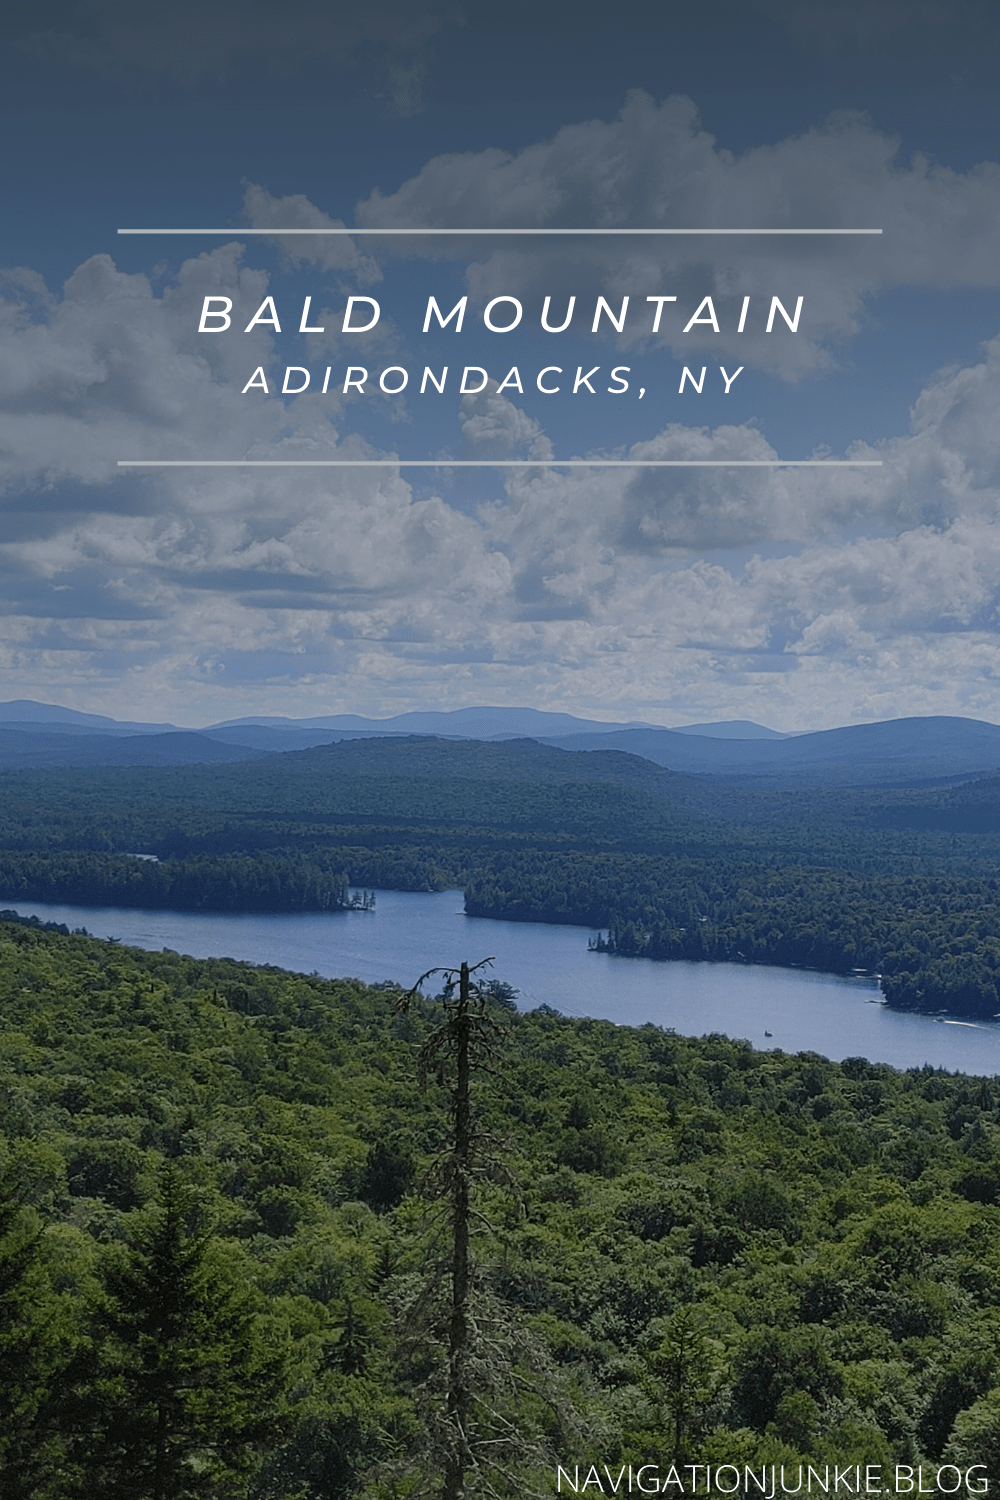 A rocky paradise sitting in the Adirondacks, hiking Bald Mountain is the perfect way to spend a morning or afternoon alone or with the family